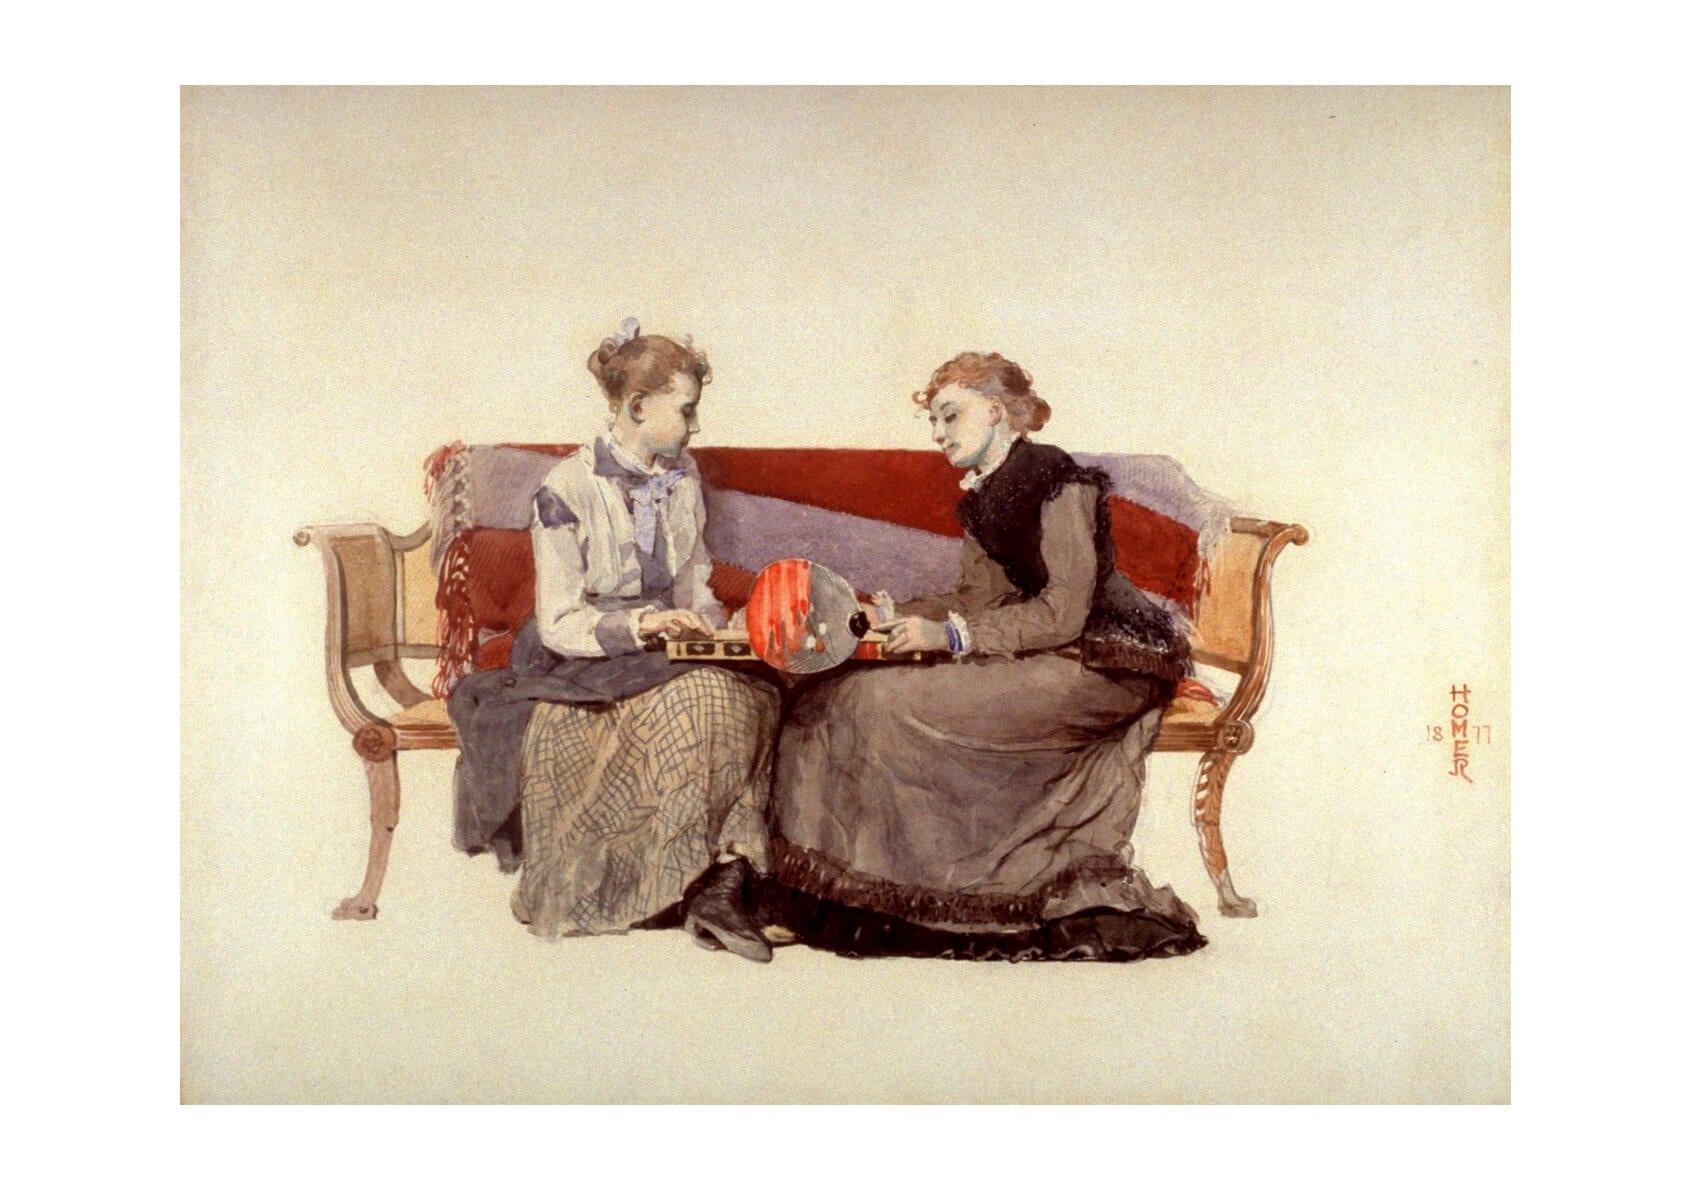 Winslow Homer - Backgammon (1877)